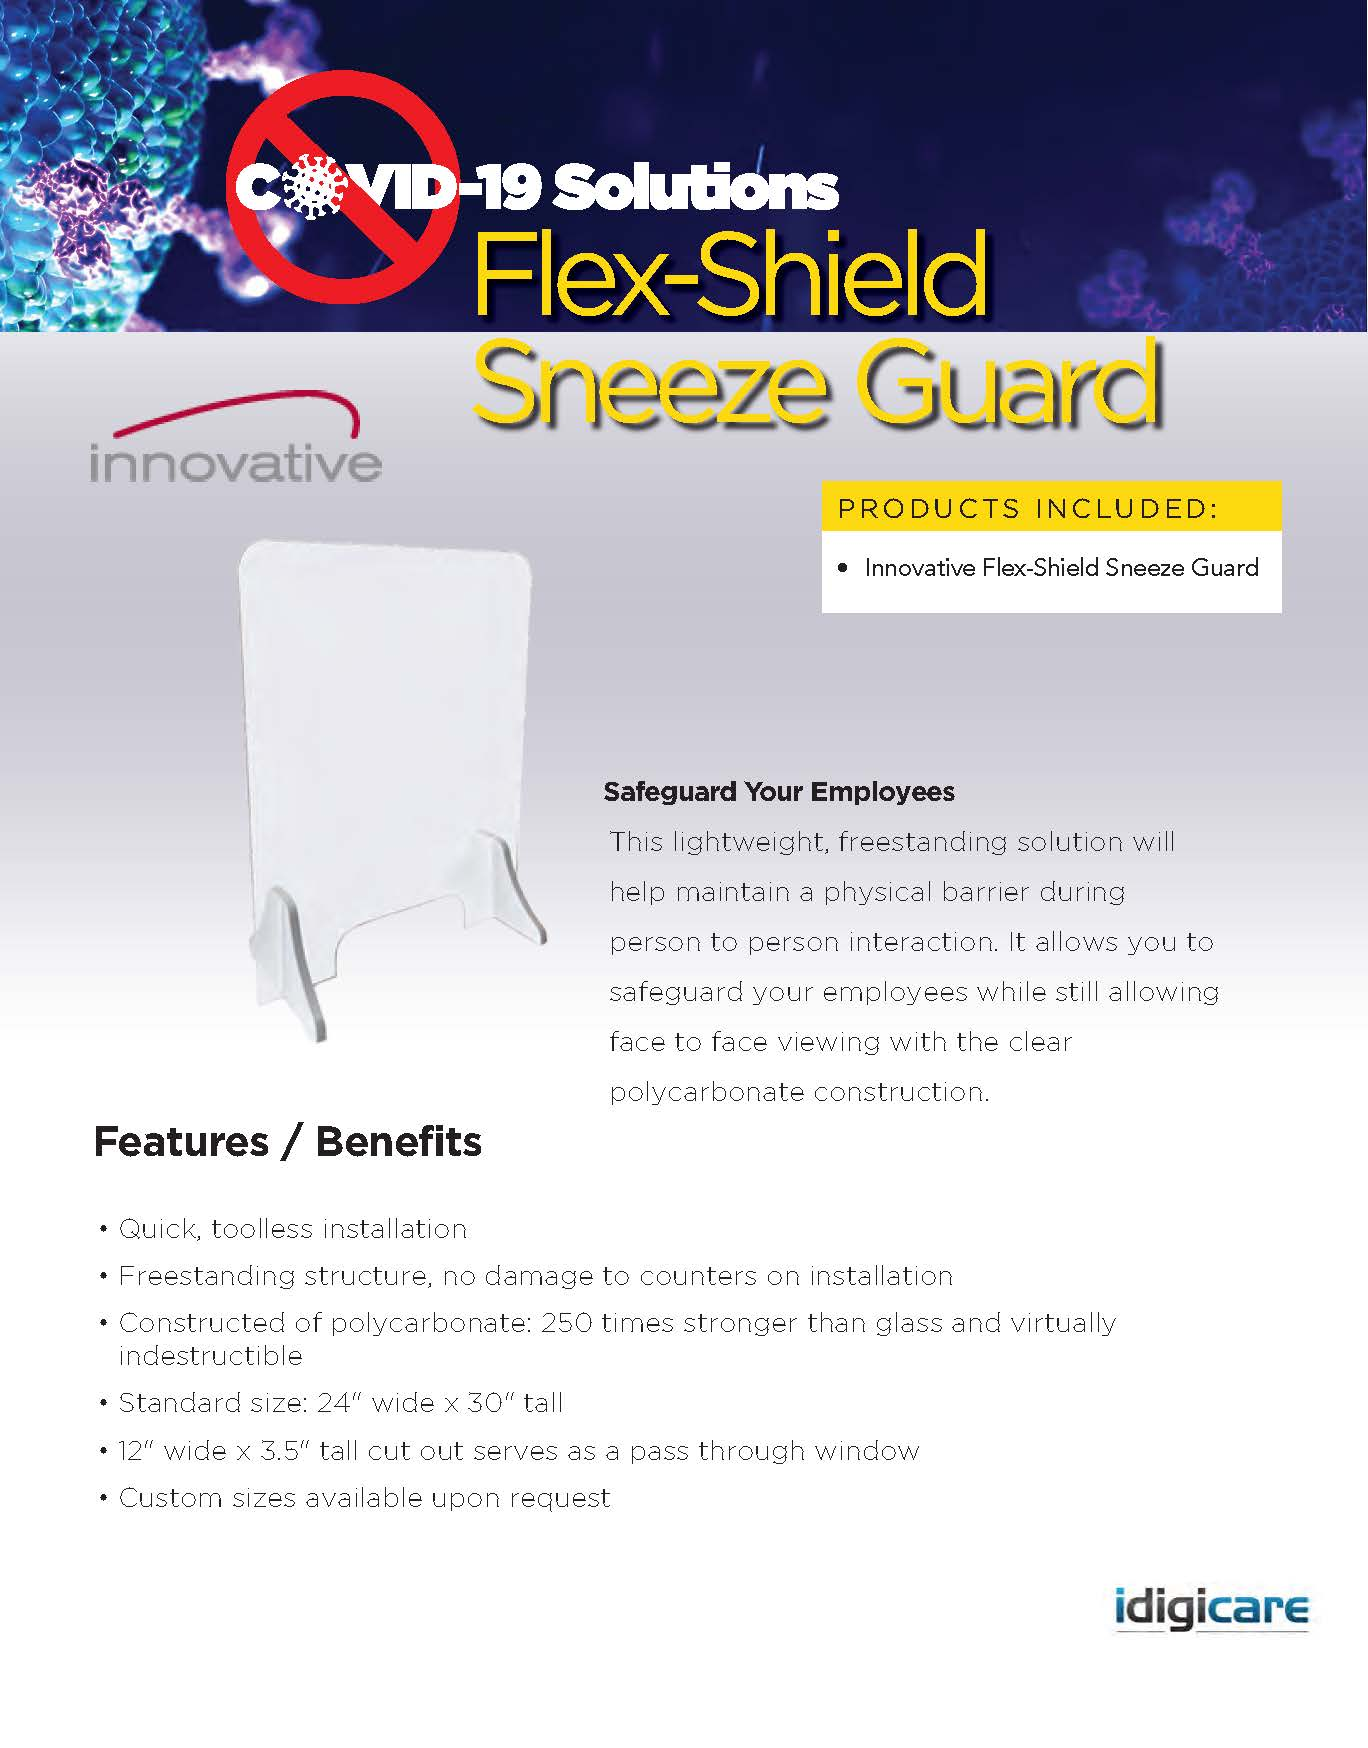 Flex-Shield Sneeze Guard